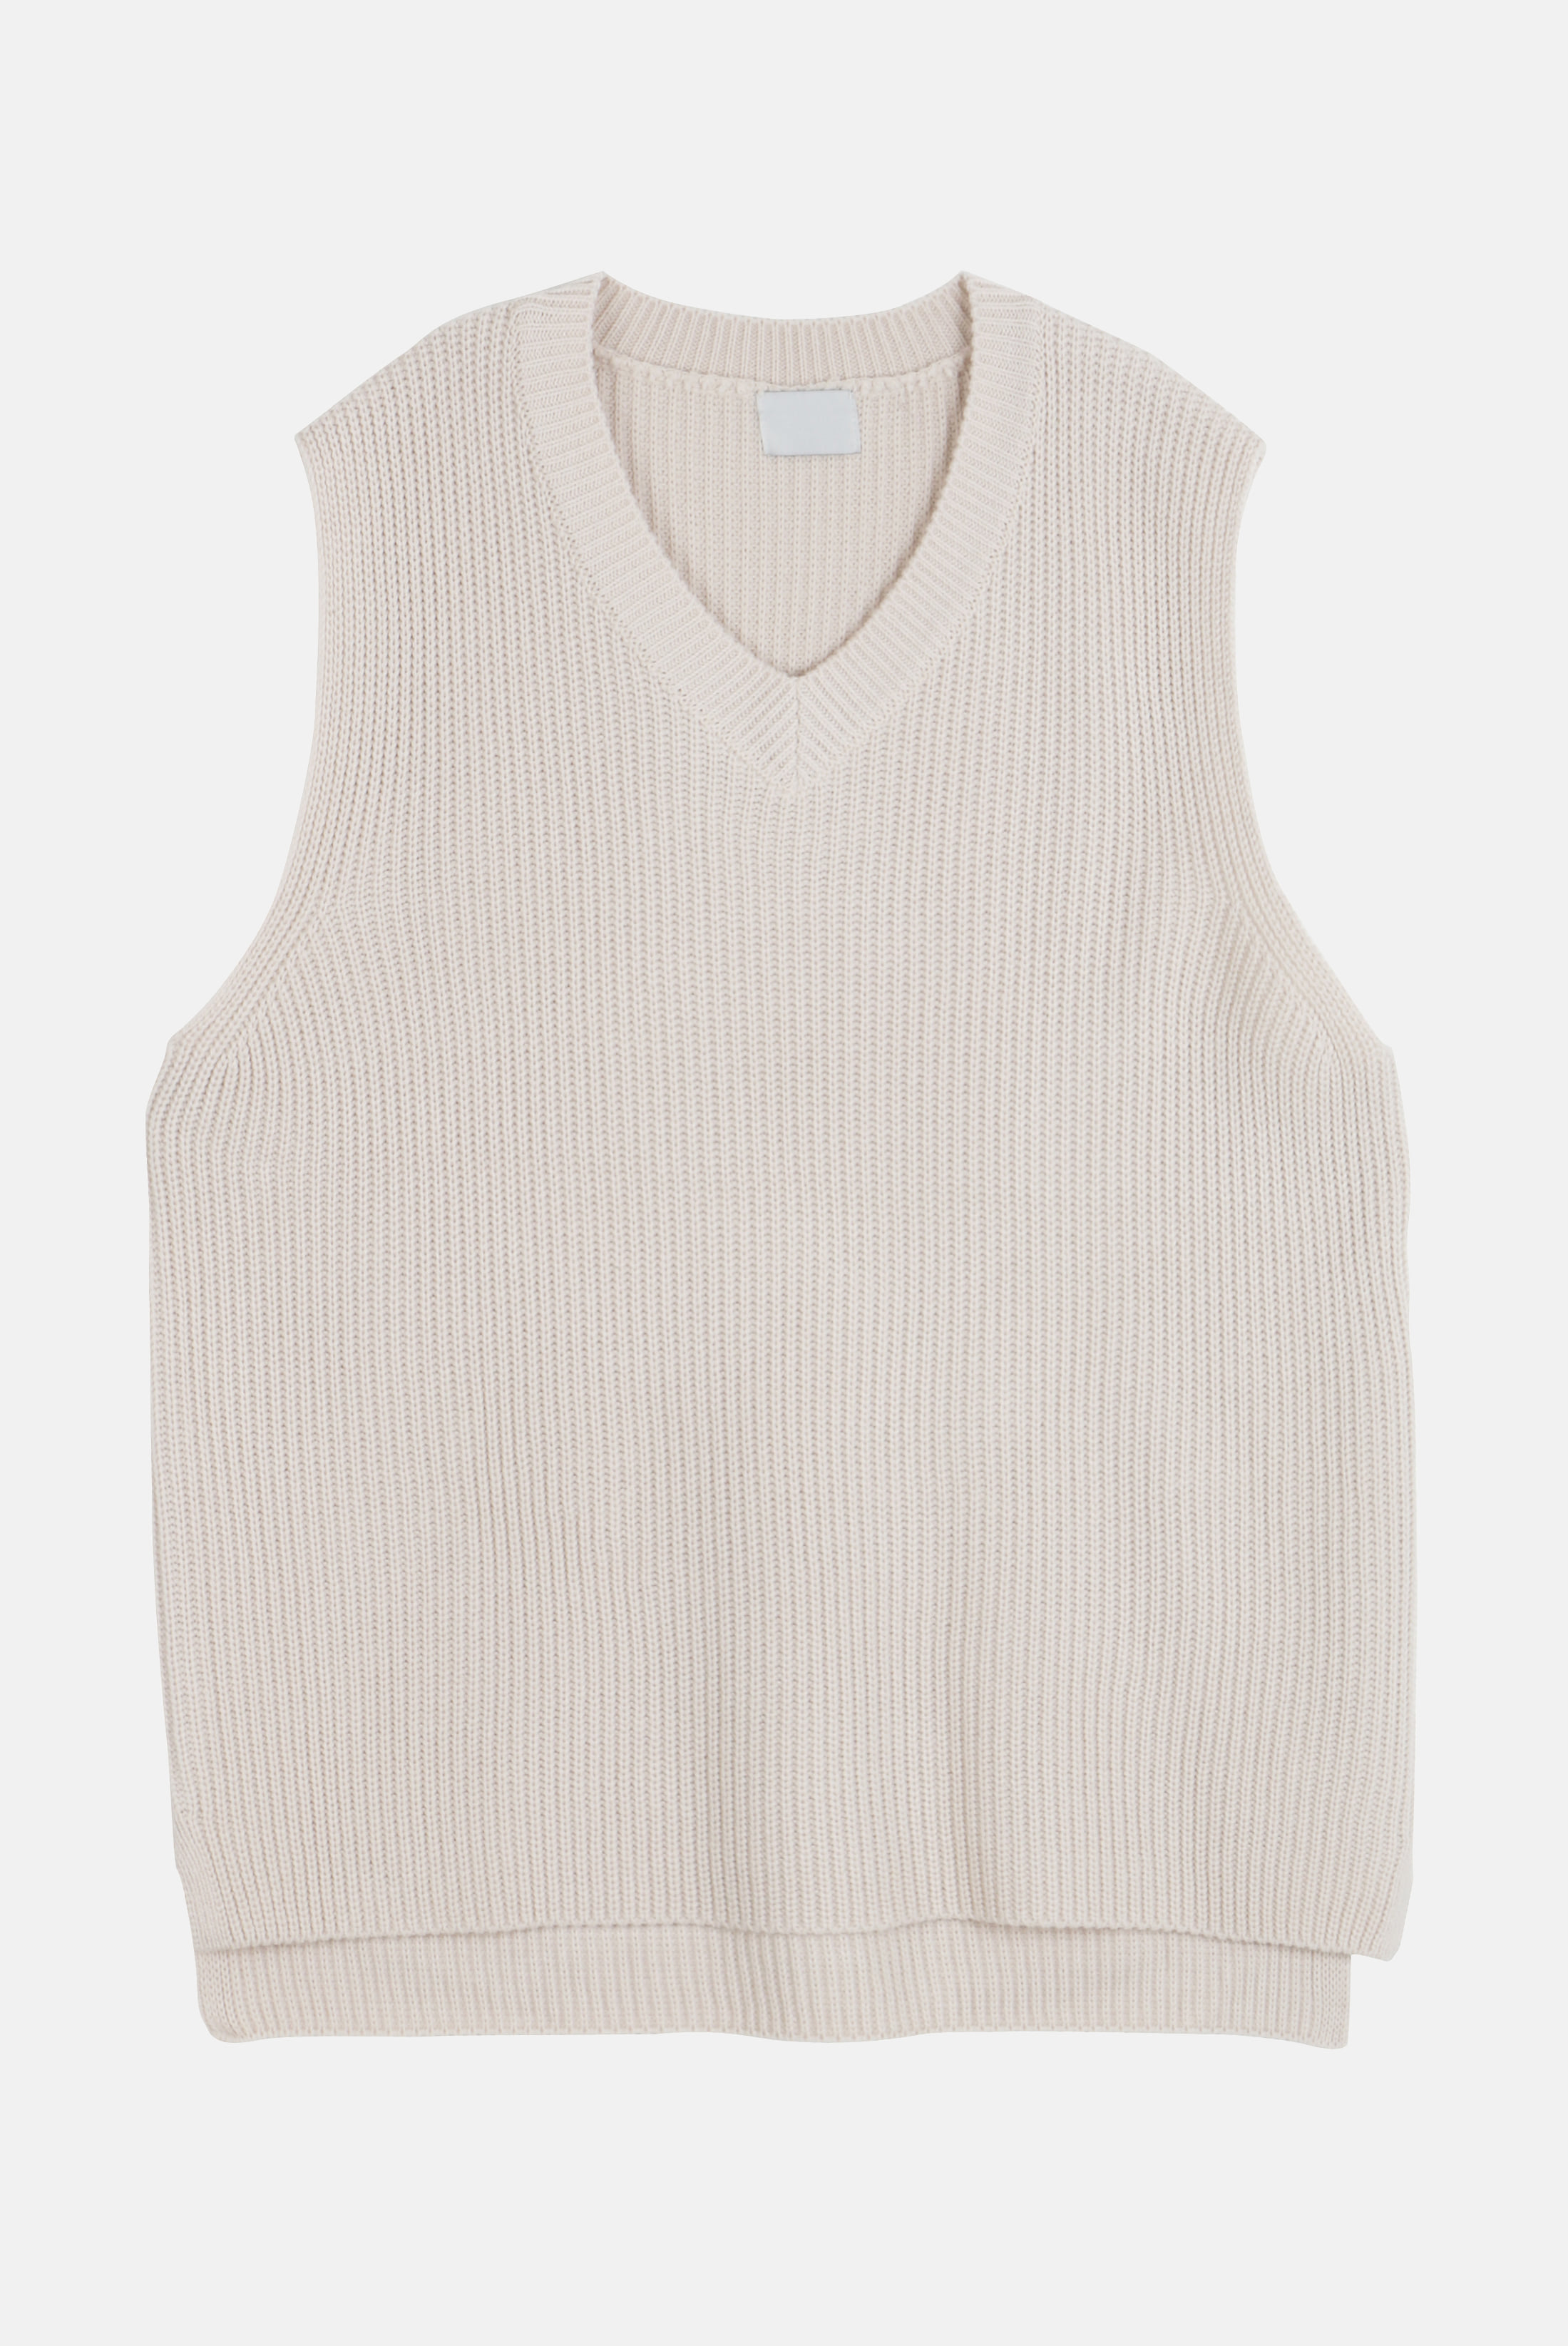 V_Neck Over Kint_Vest